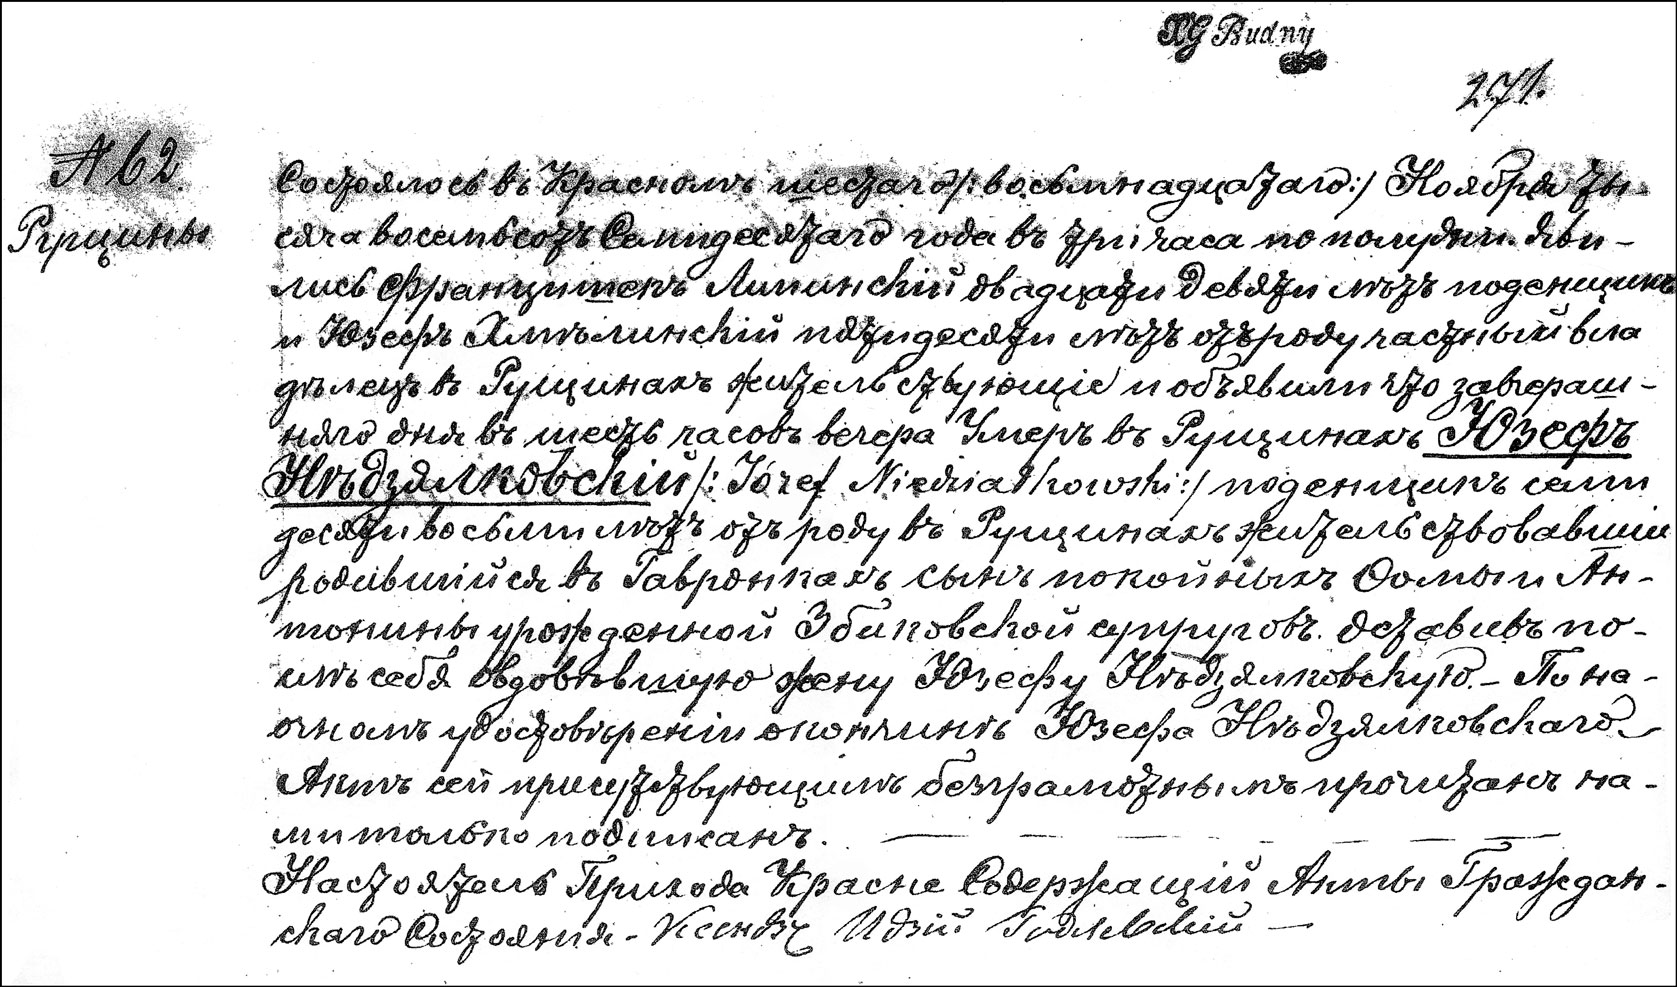 The Death and Burial Record of Jozef Niedzialkowski - 1870